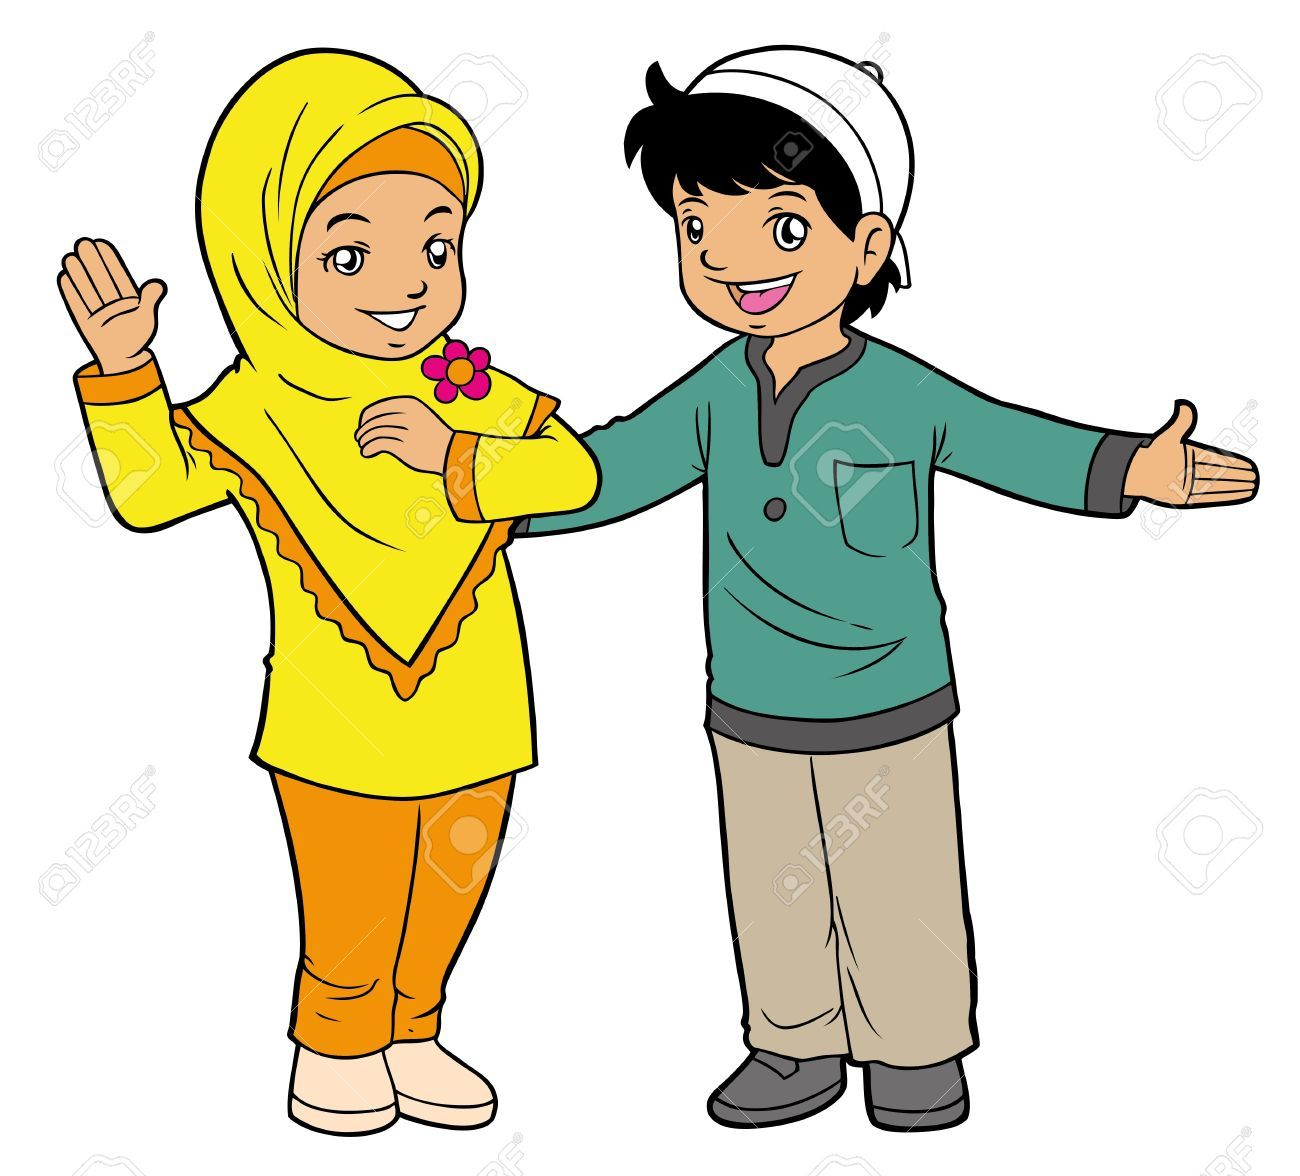 Gambar Kartun Anak Muslim Pinterest Wallpapers